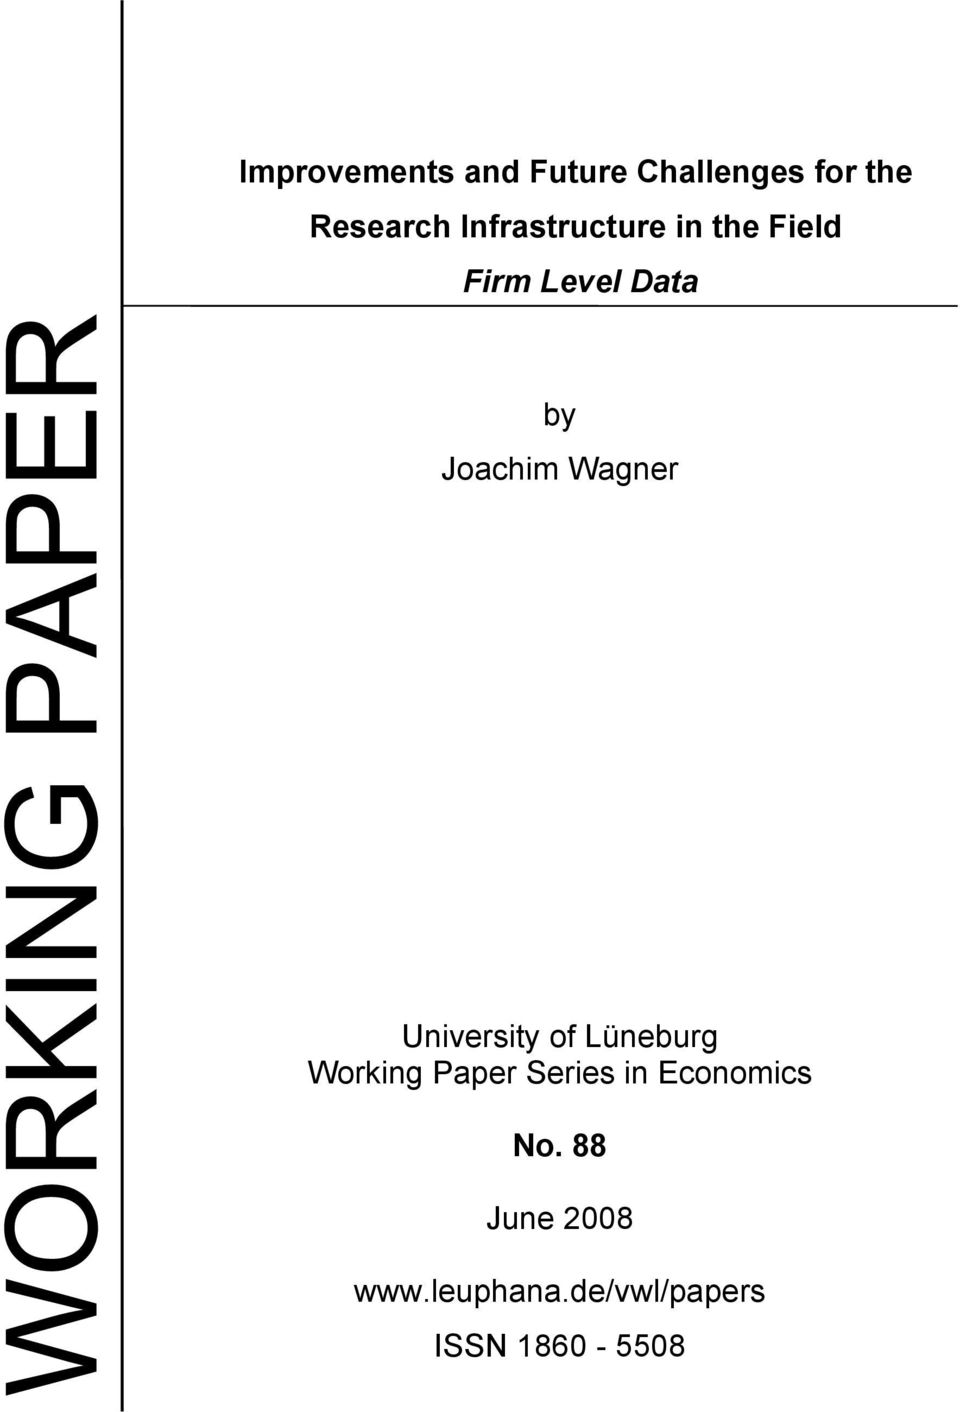 Wagner University of Lüneburg Working Paper Series in